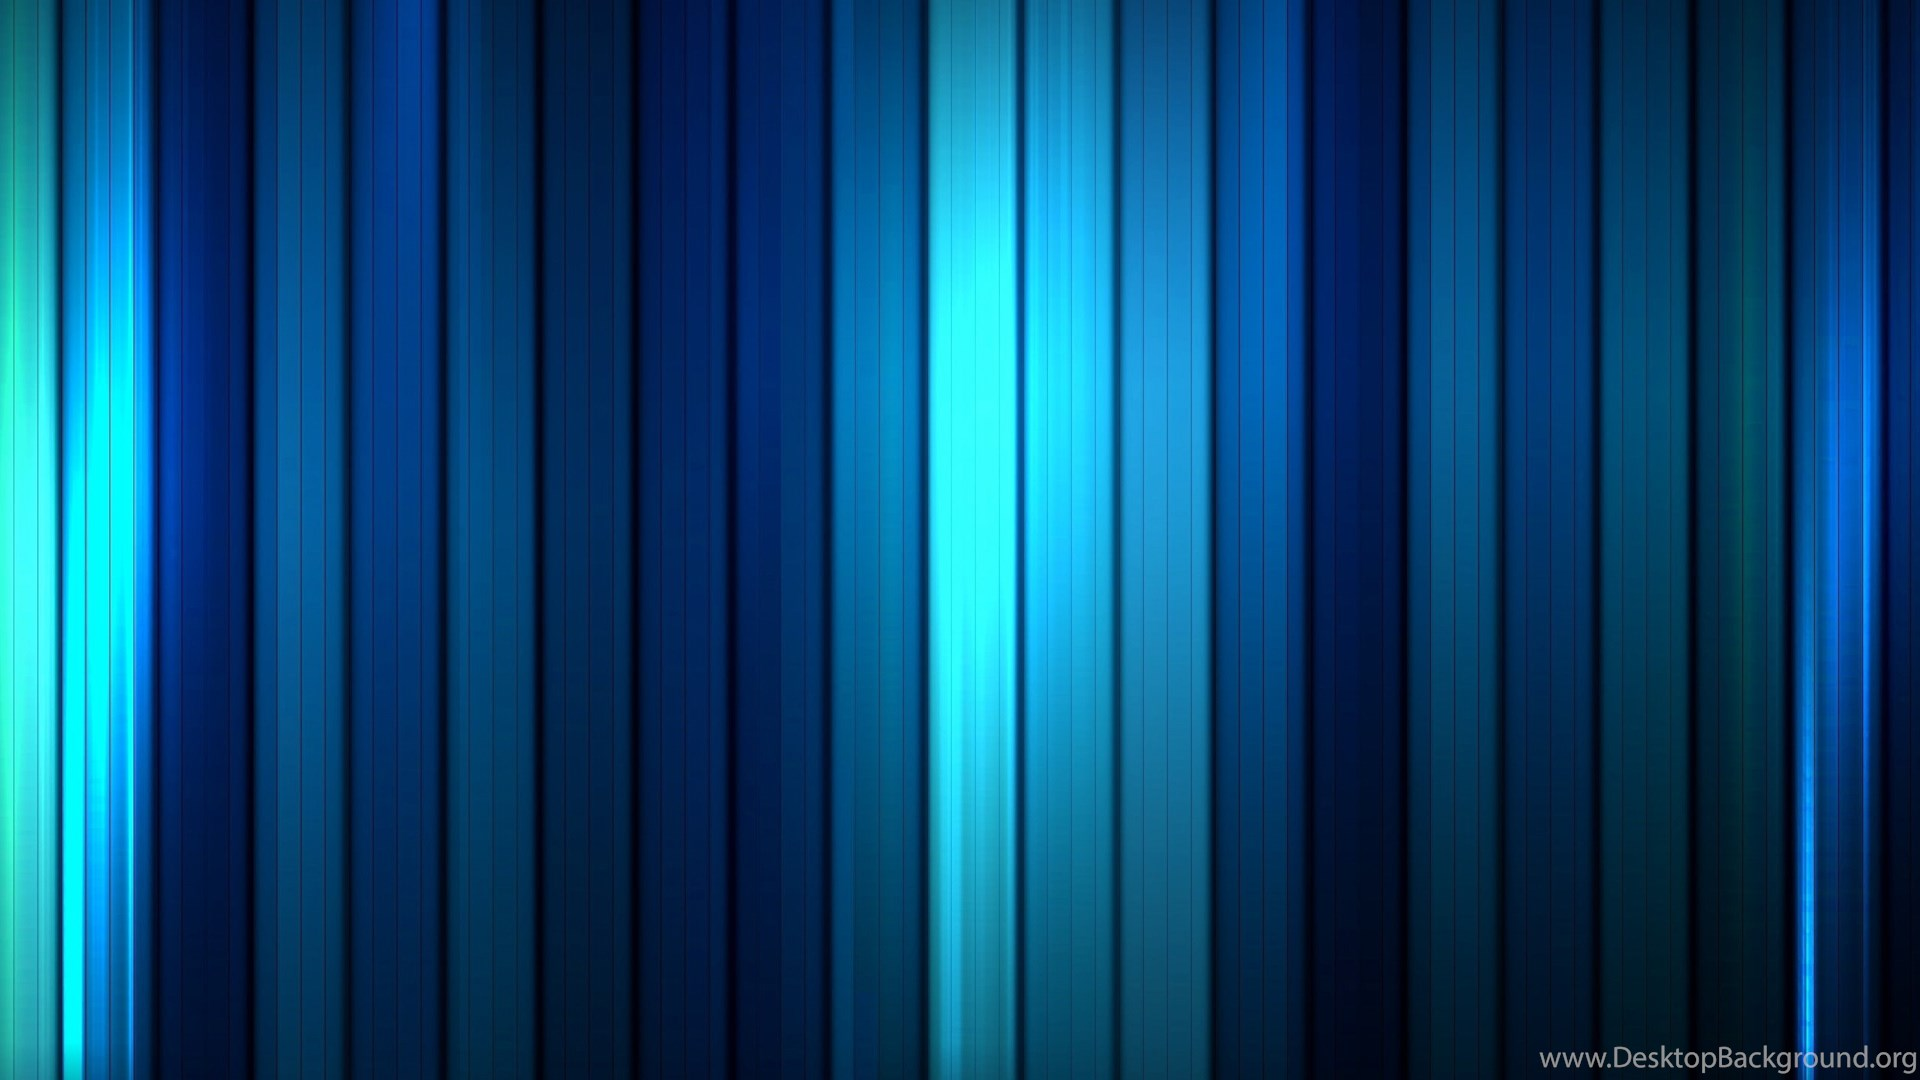 Abstract Striped Texture Textures Simple Backgrounds (2560x1440 ...